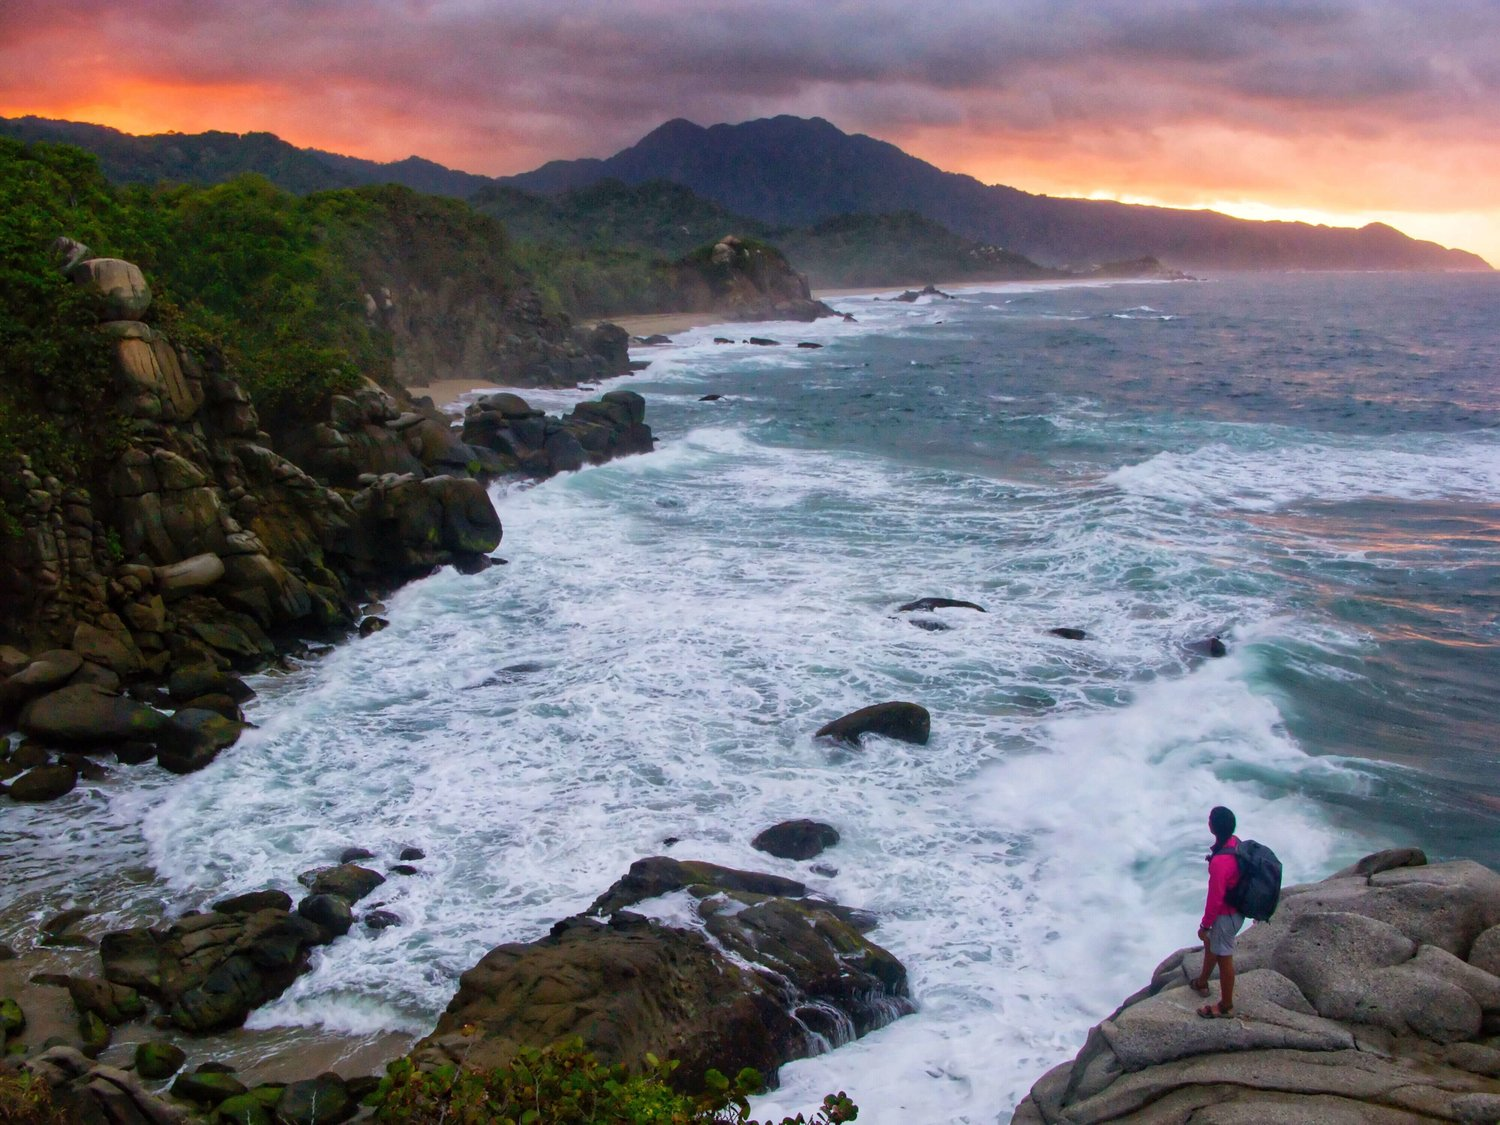 WhereNext filming at our favorite sunset spot in Tayrona National Park. Photo: Gregg Bleakney / WhereNext